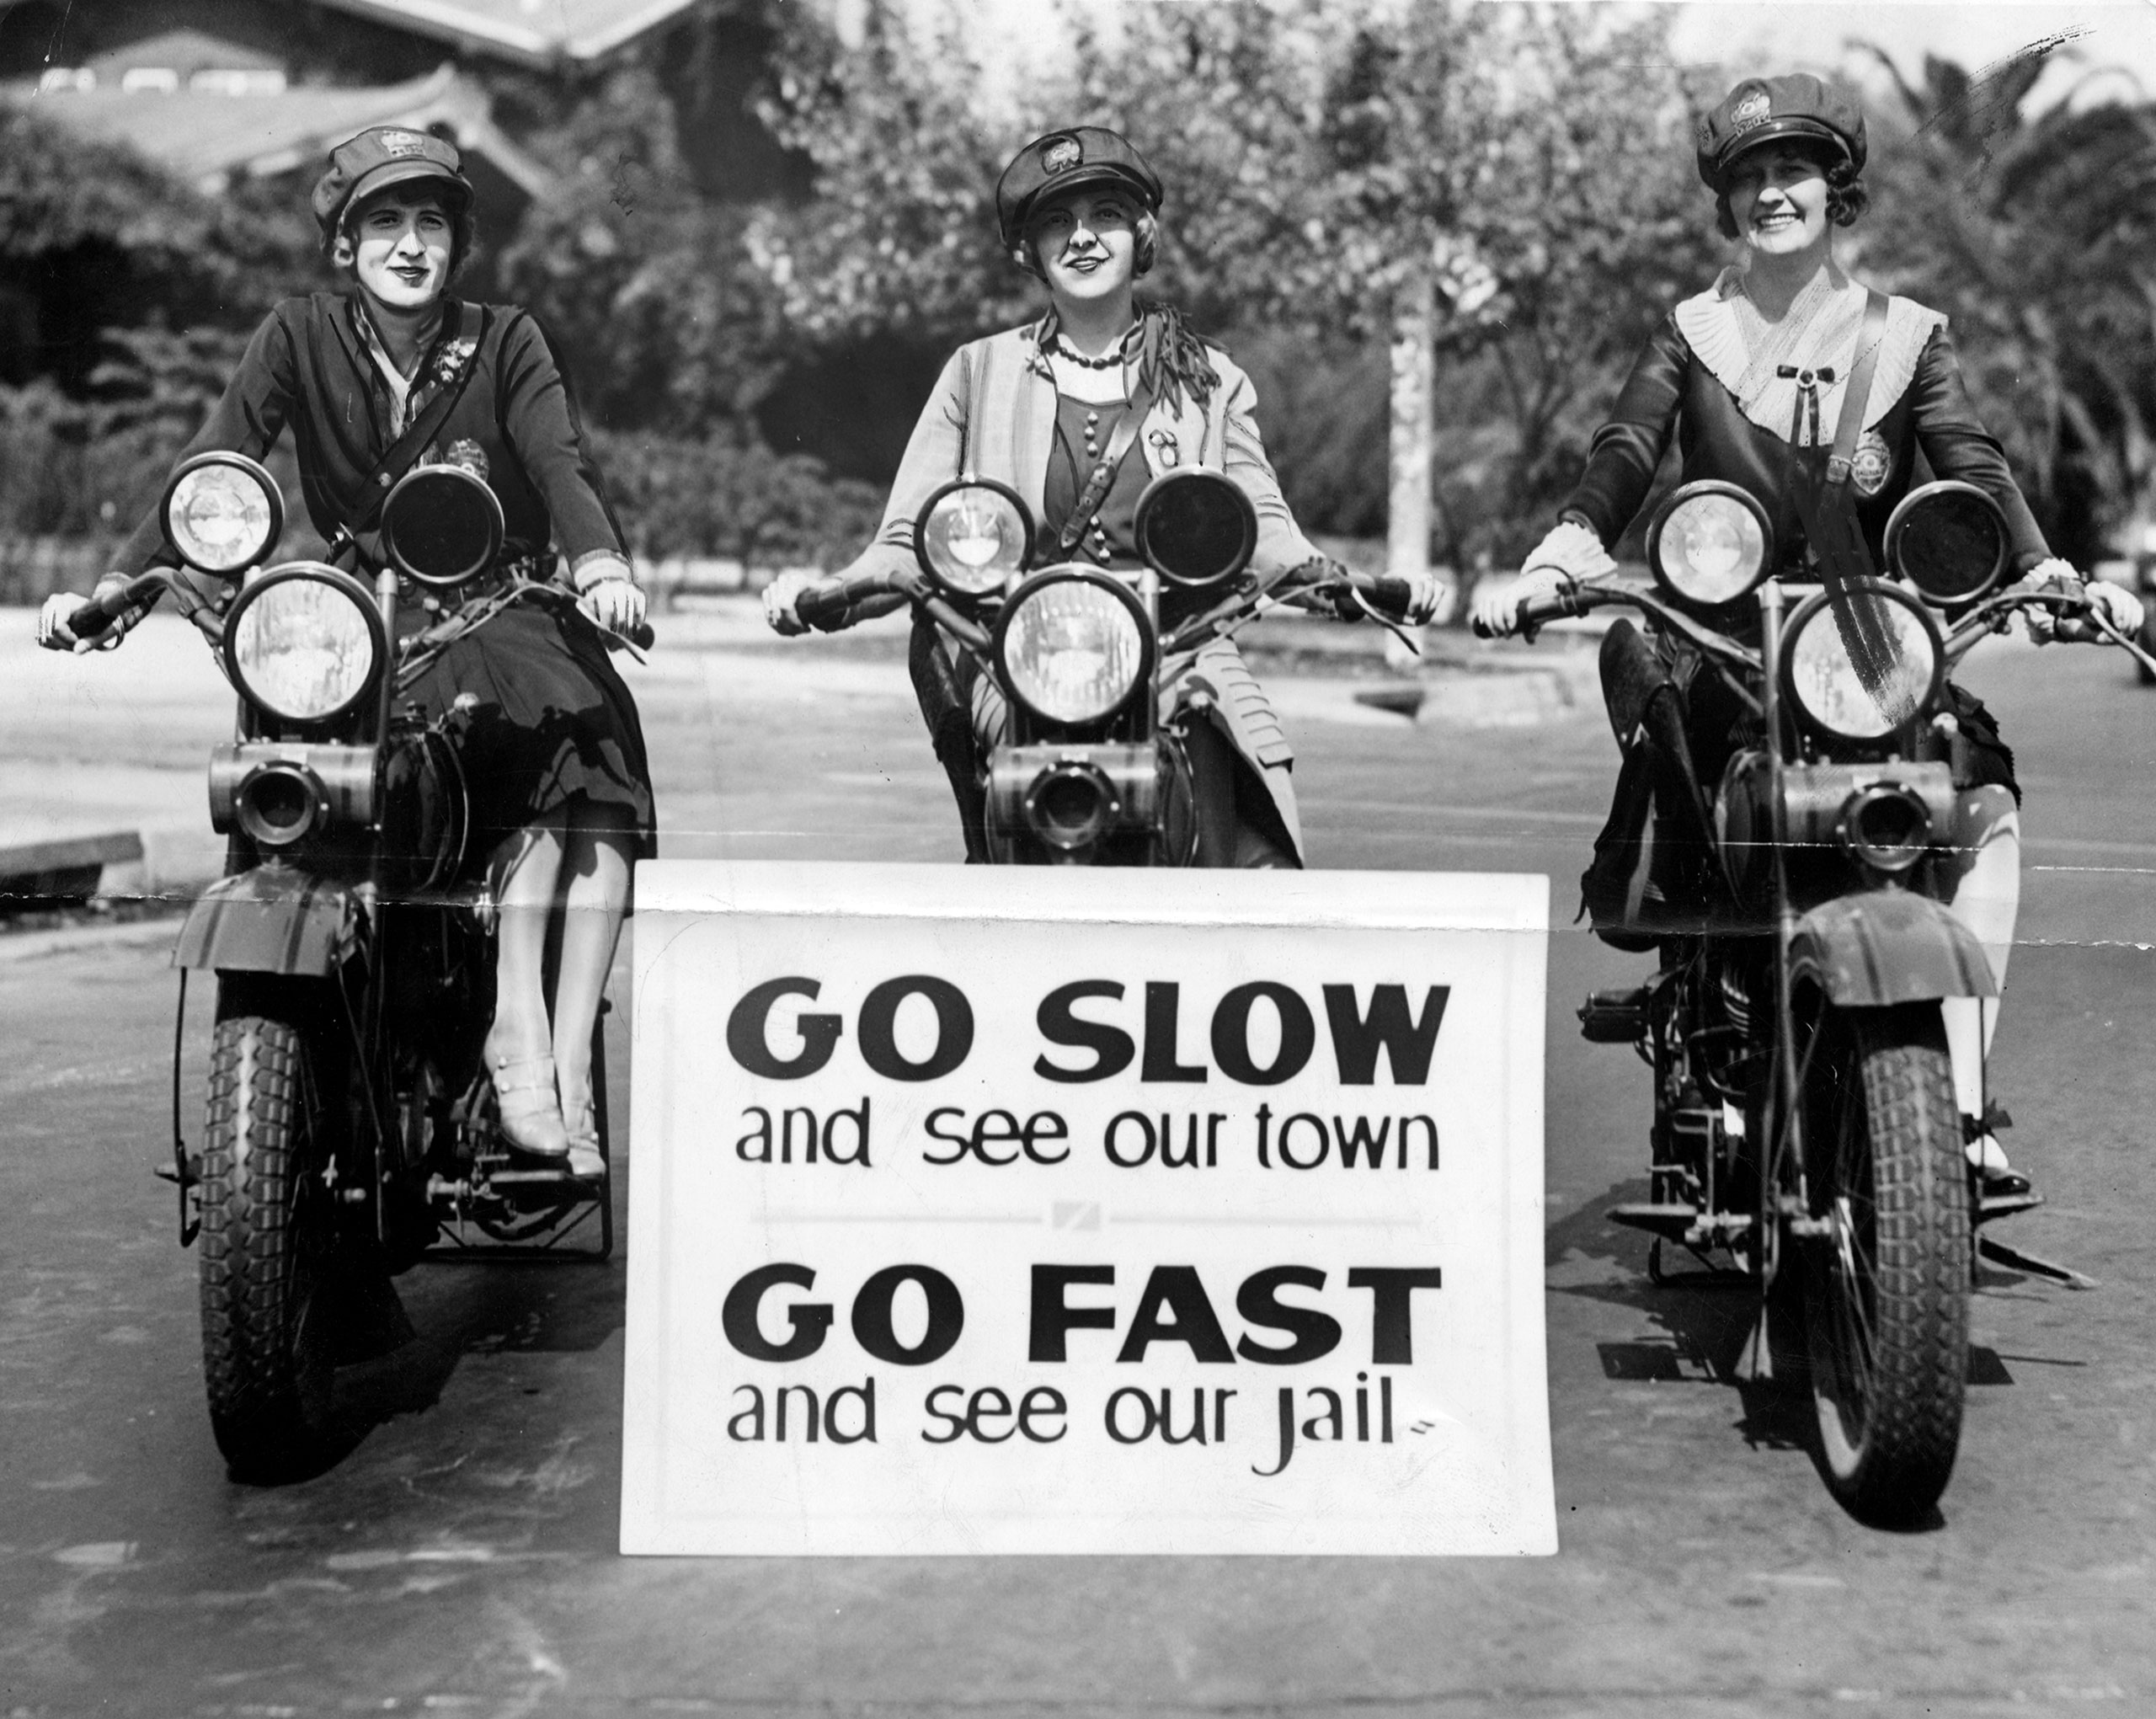 Three motorcycle officers with the LAPD are on duty in 1927. From left to right: Miss Hildur Fleming; Miss Myra Richardson,; and Miss Beryl Wilson.